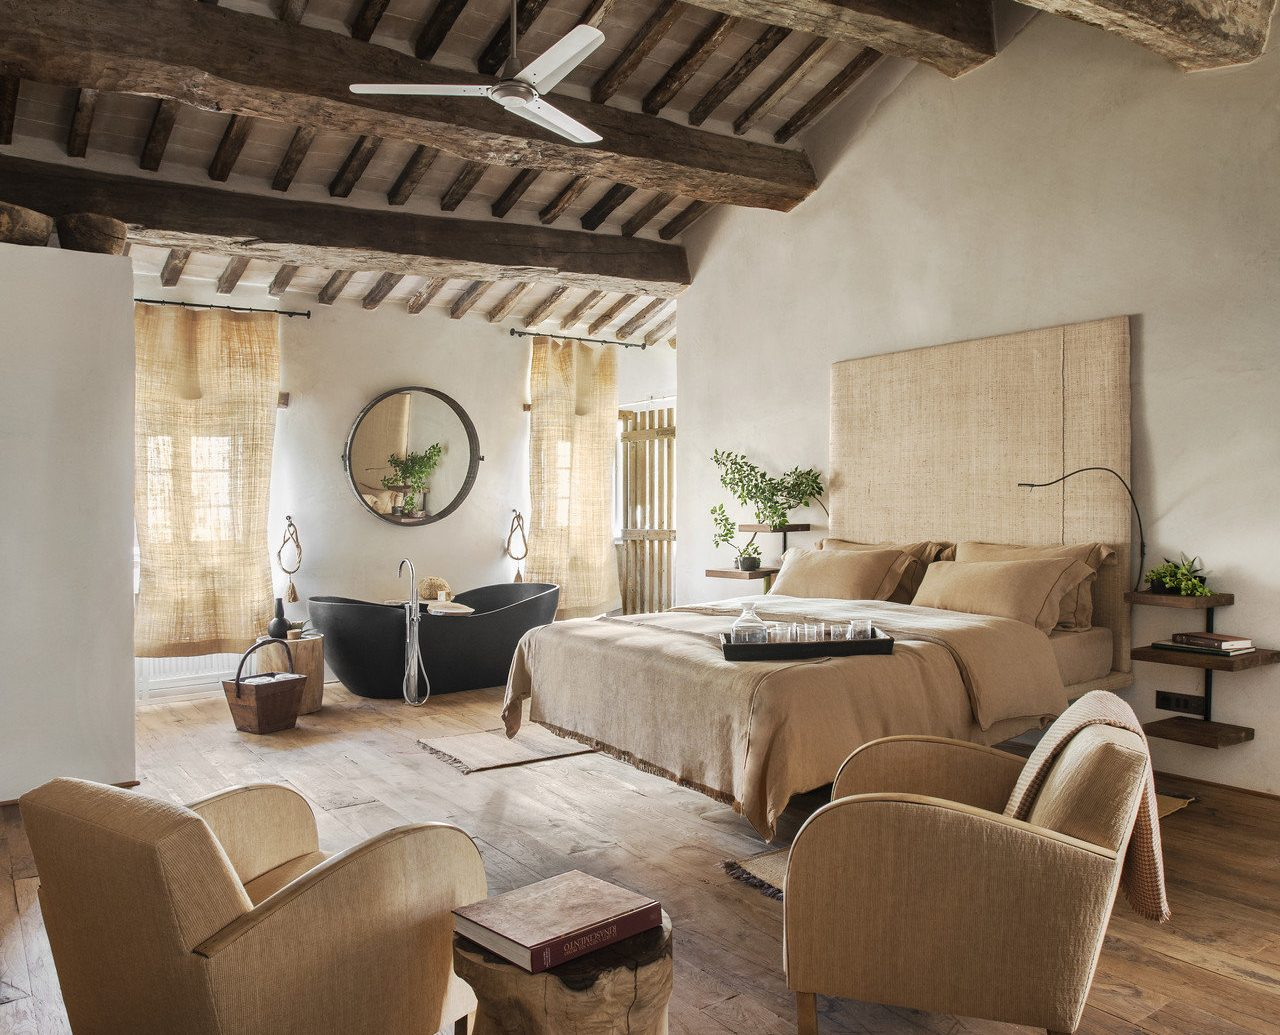 bed Bedroom charming cozy europe homey interior quaint Rustic Trip Ideas indoor room property living room house estate home wood floor farmhouse cottage interior design Villa attic sofa stone